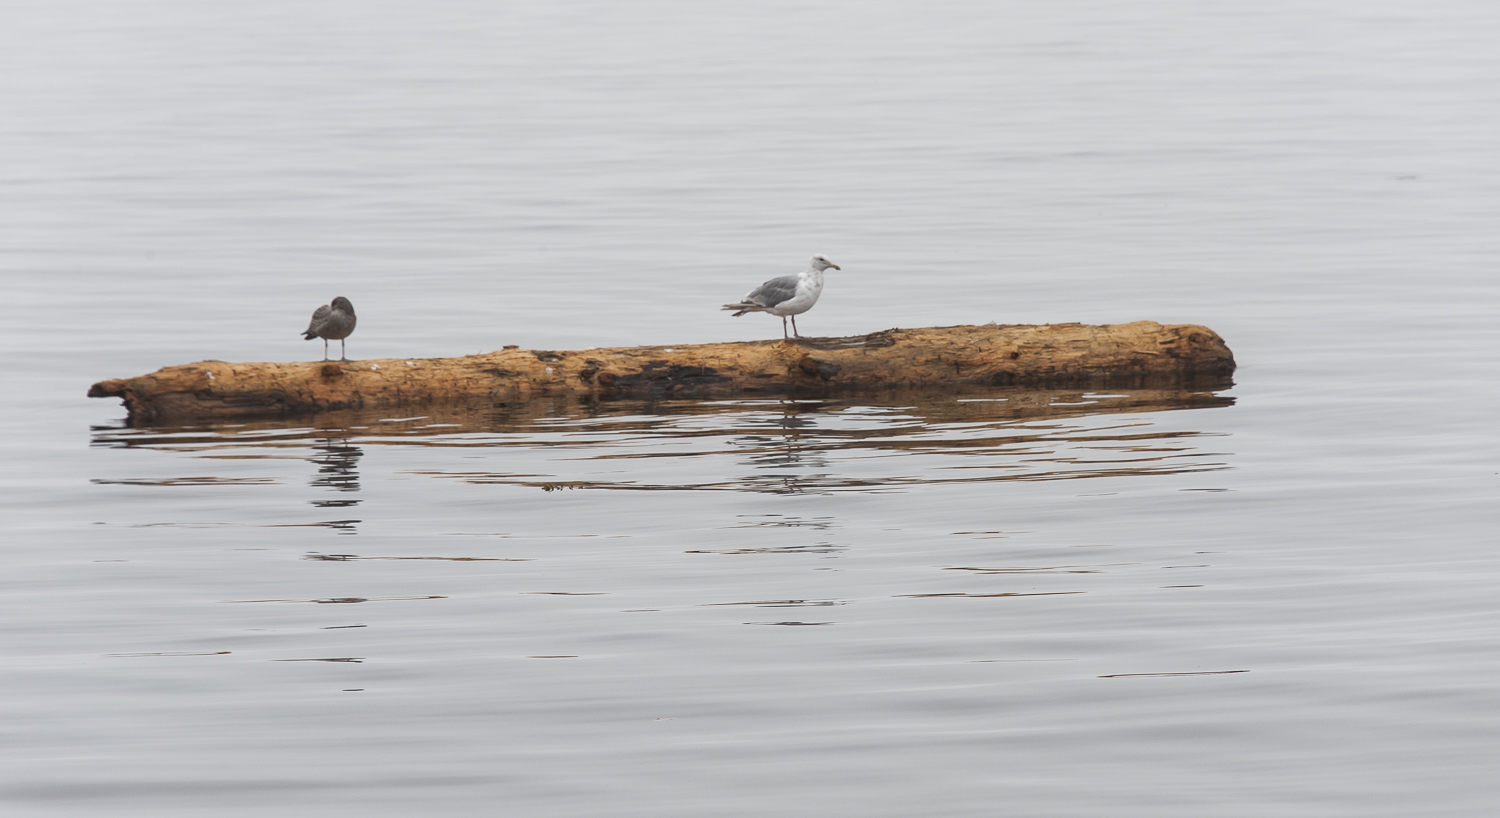 birds are a big help in spotting logs